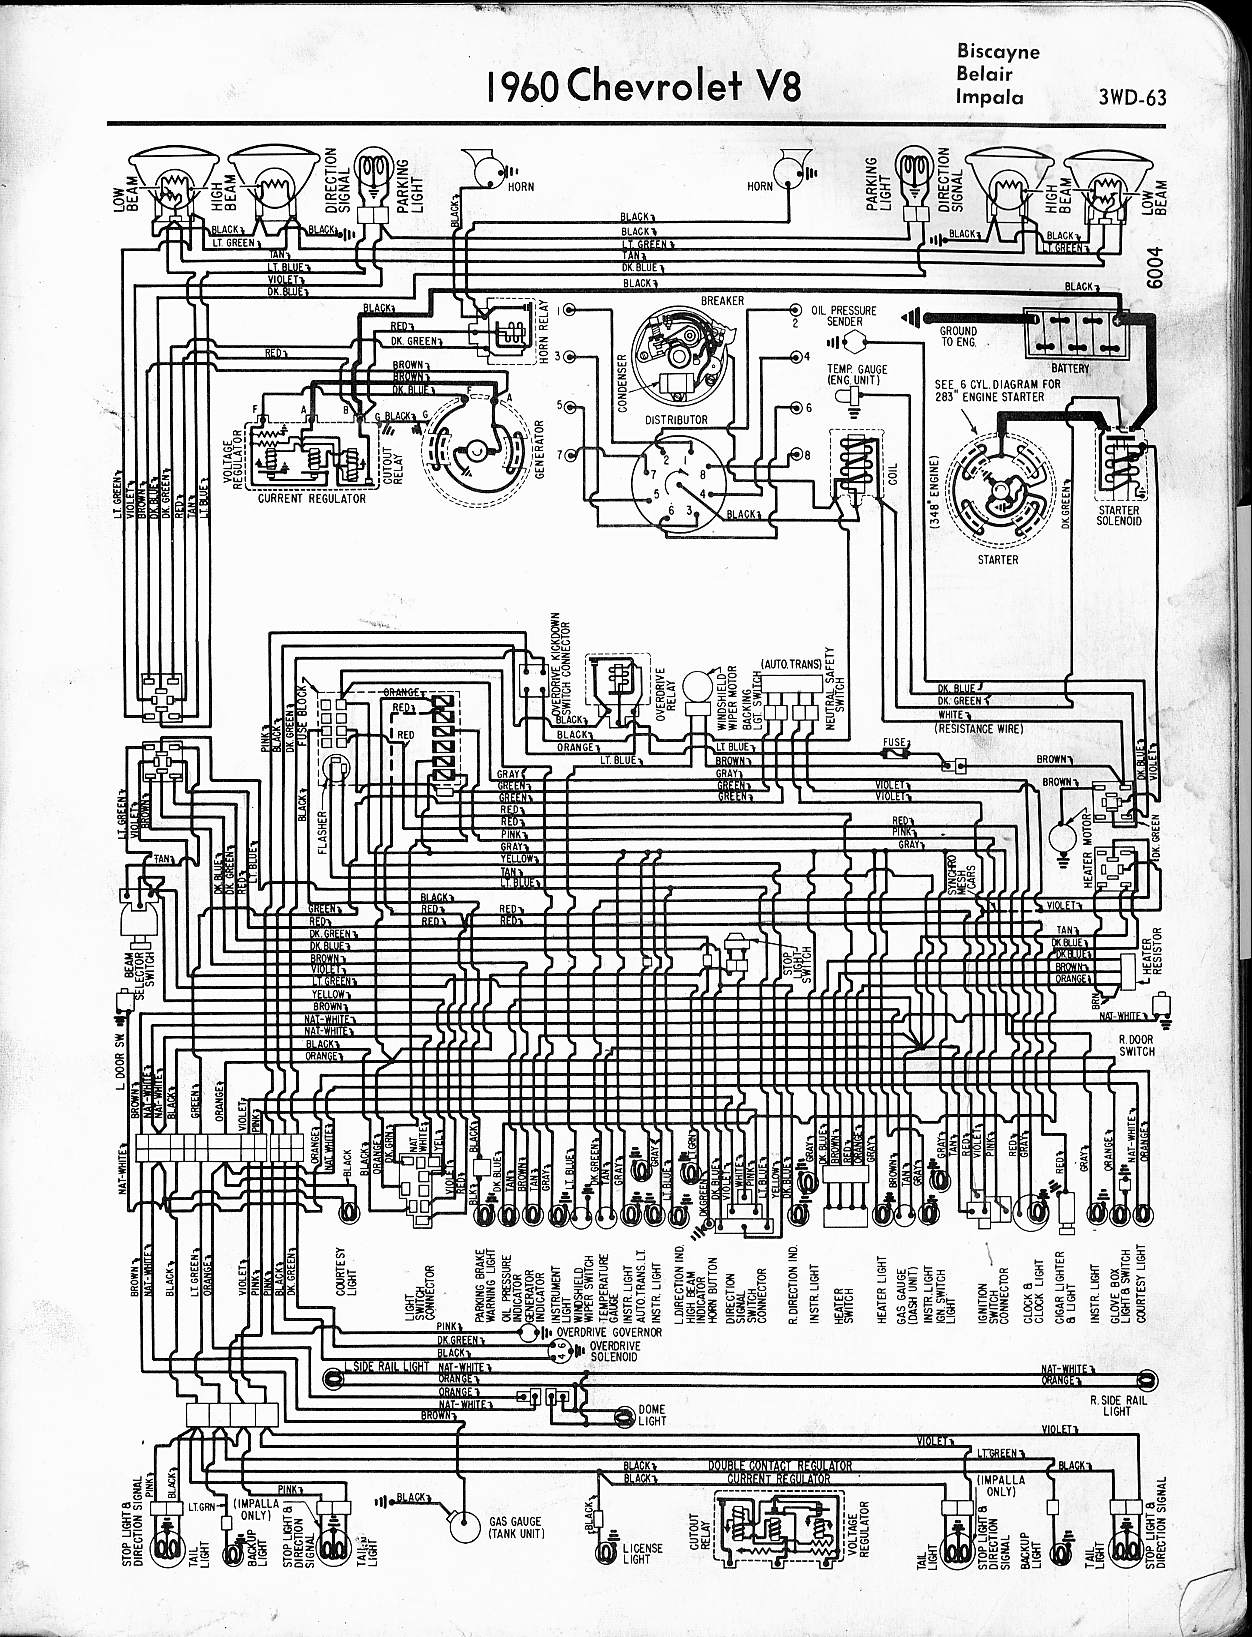 MWireChev60_3WD 063 1981 el camino wiring diagram 71 el camino wiring diagram \u2022 wiring 64 Chevy Impala Wiring Diagram at webbmarketing.co